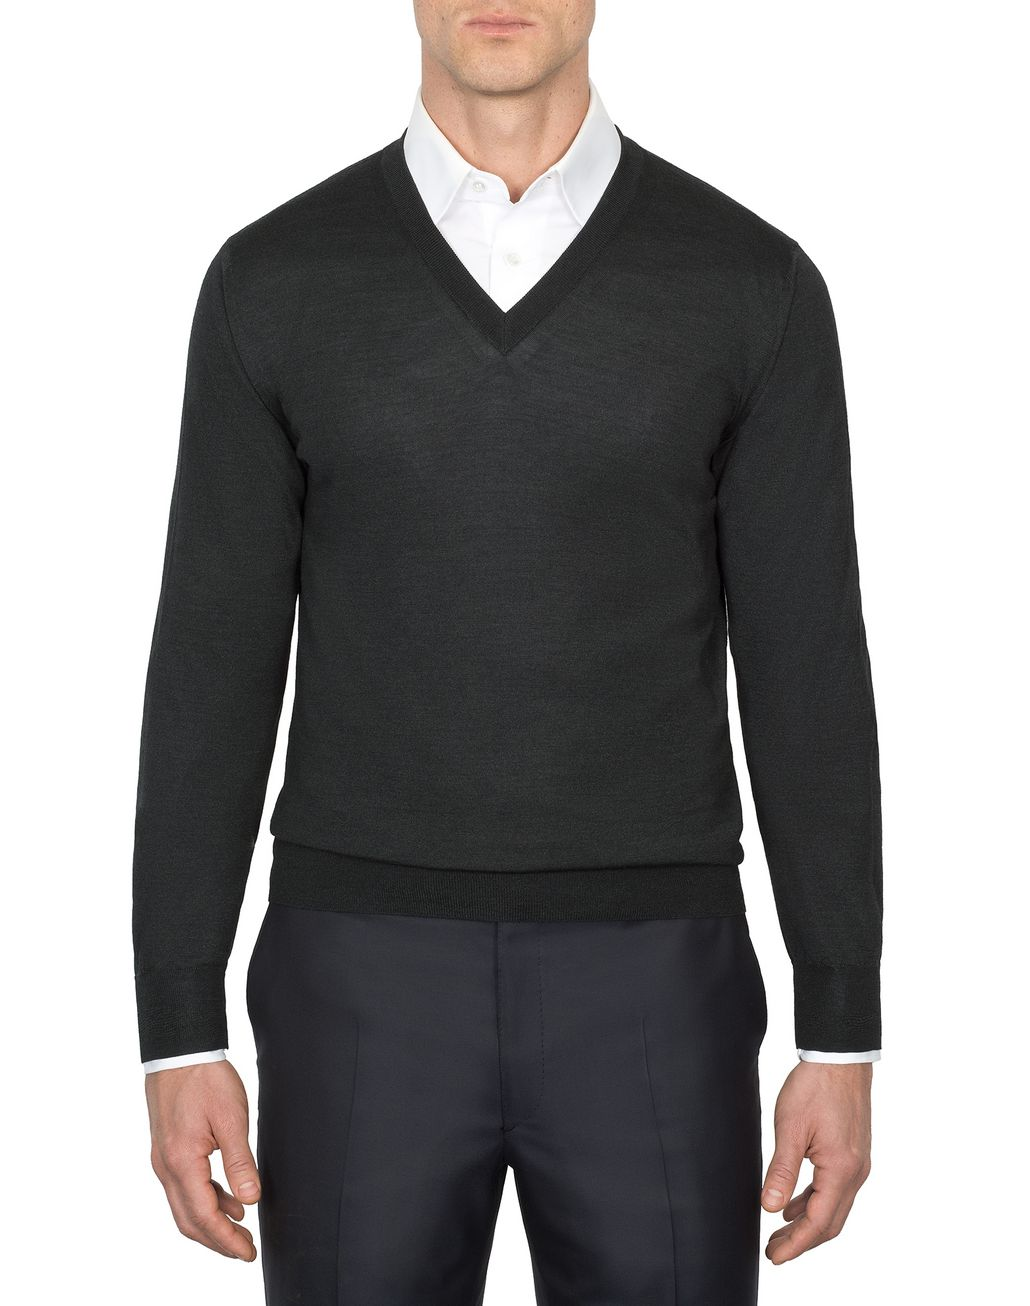 BRIONI 'Essential' Gray V-Neck Sweater Knitwear [*** pickupInStoreShippingNotGuaranteed_info ***] r